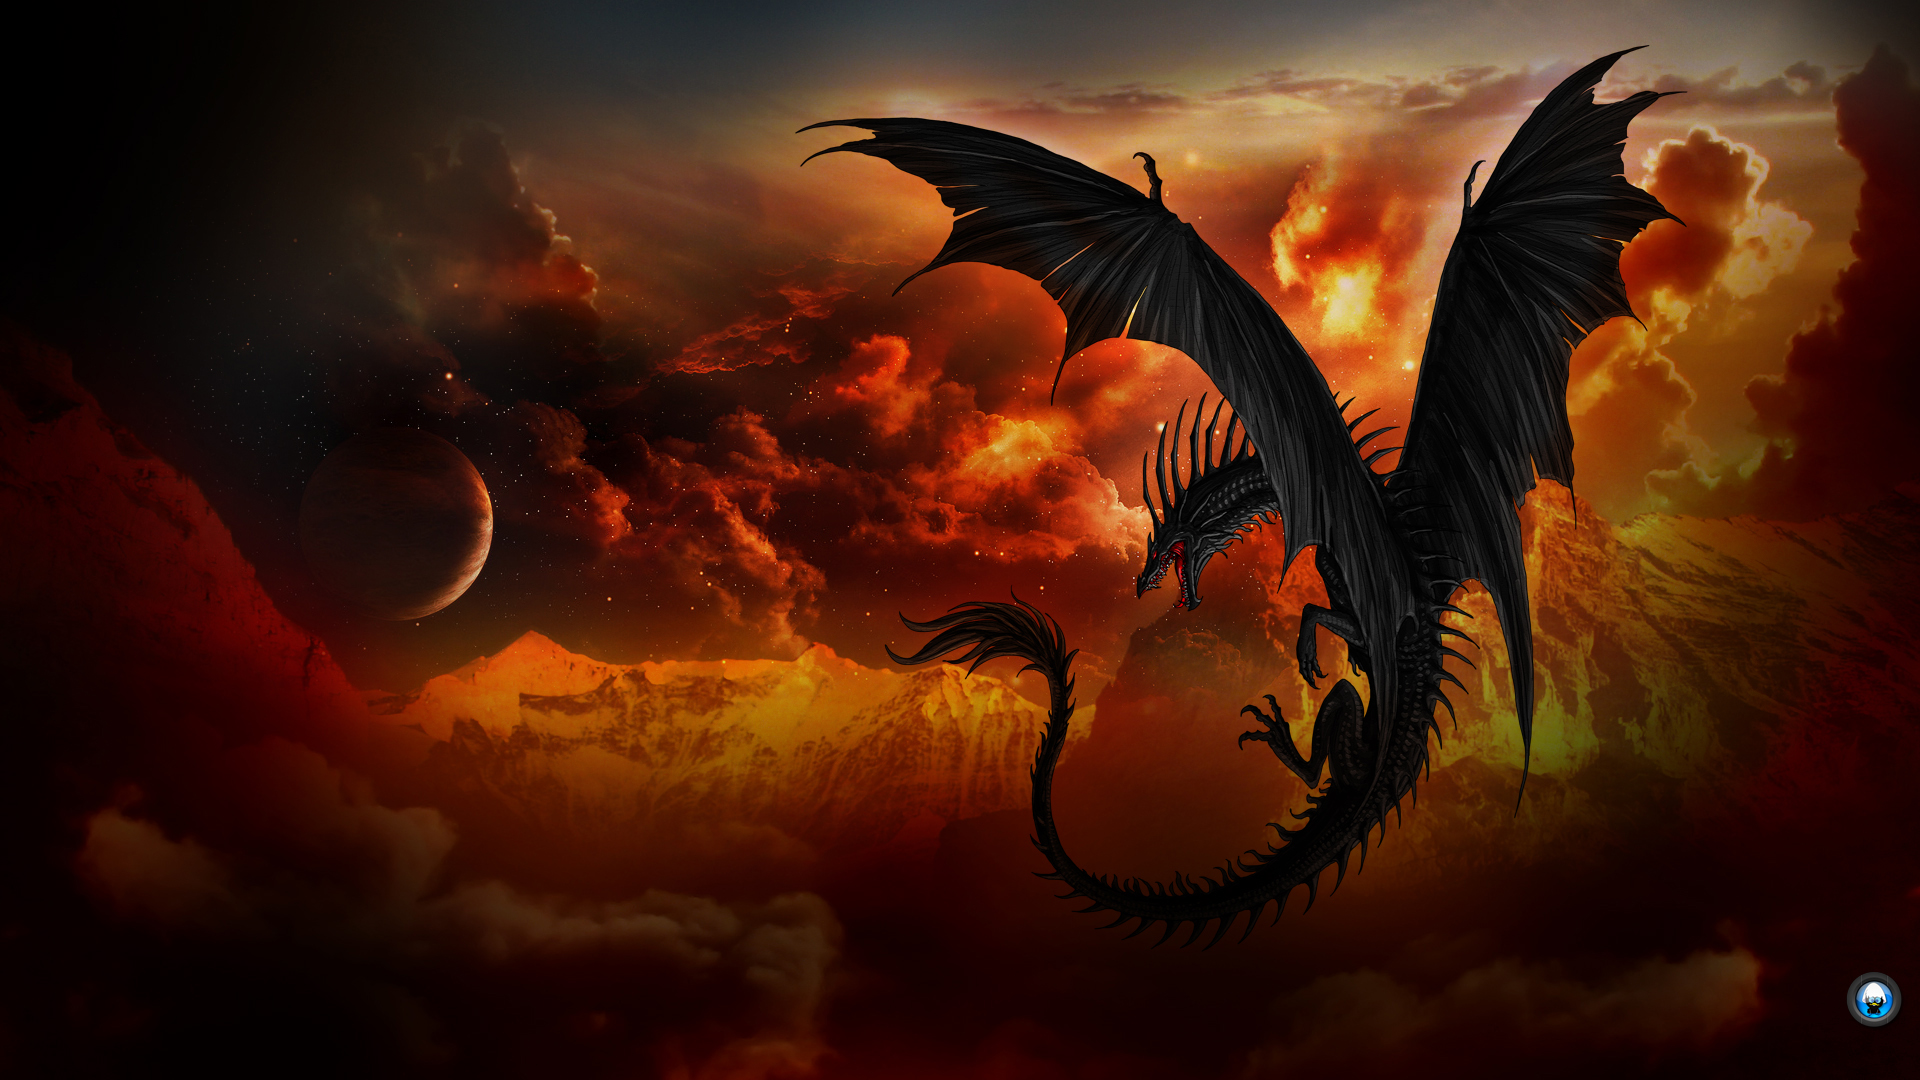 dragon wallpaper widescreen high resolution - photo #25